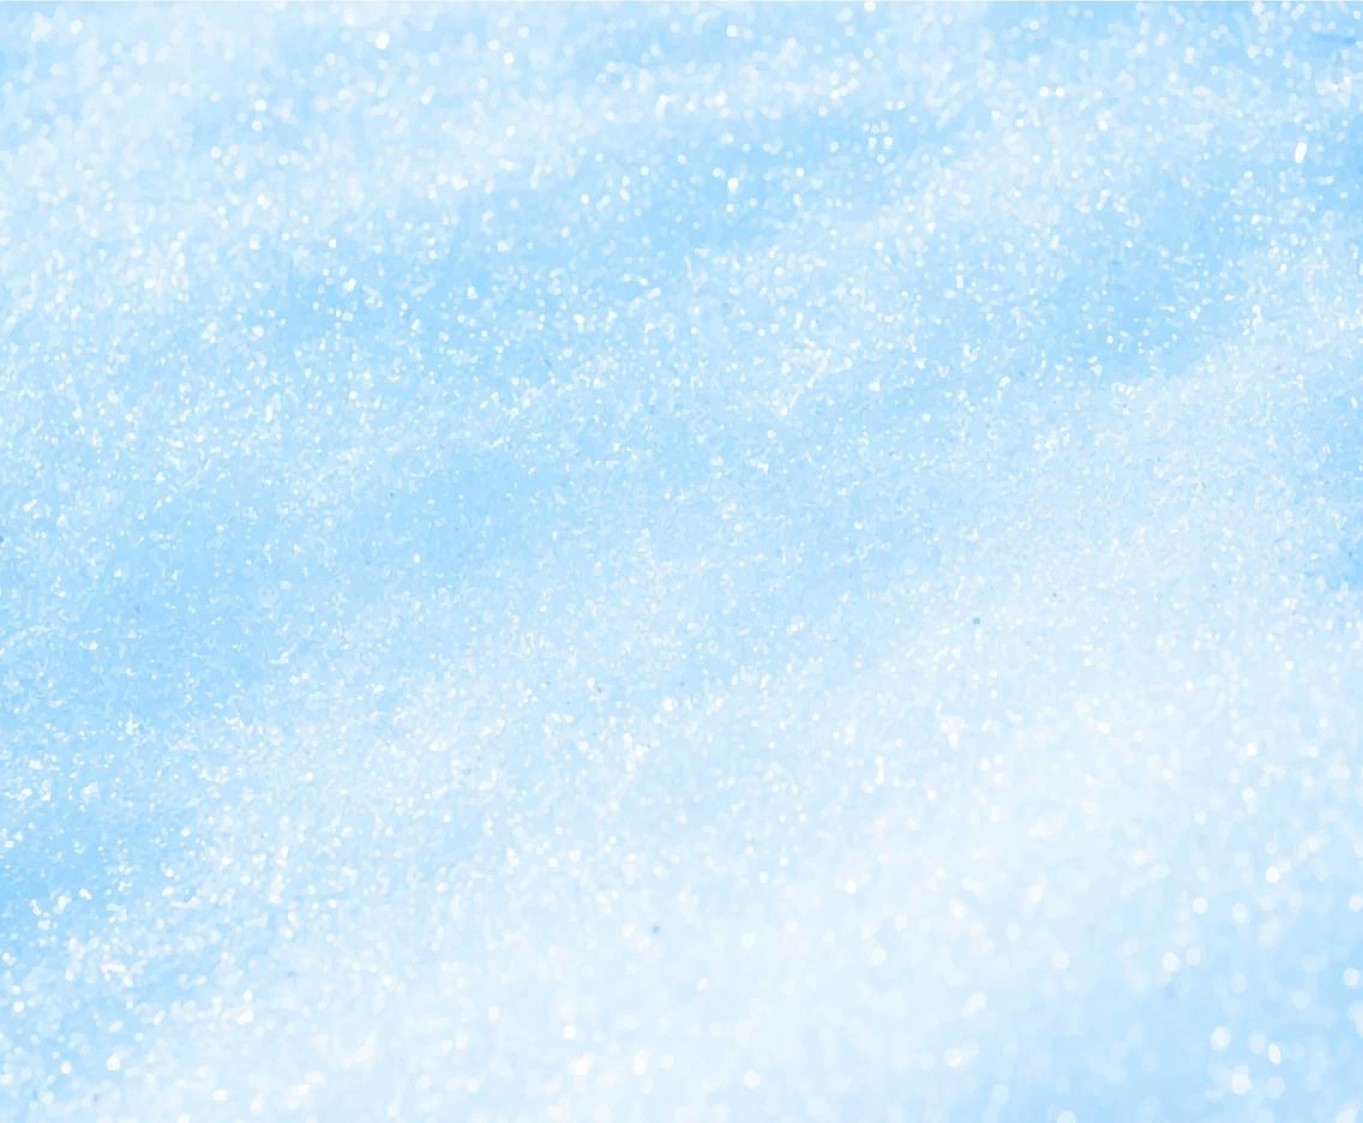 Free Winter Vector: Free Vector Winter Background With Snow